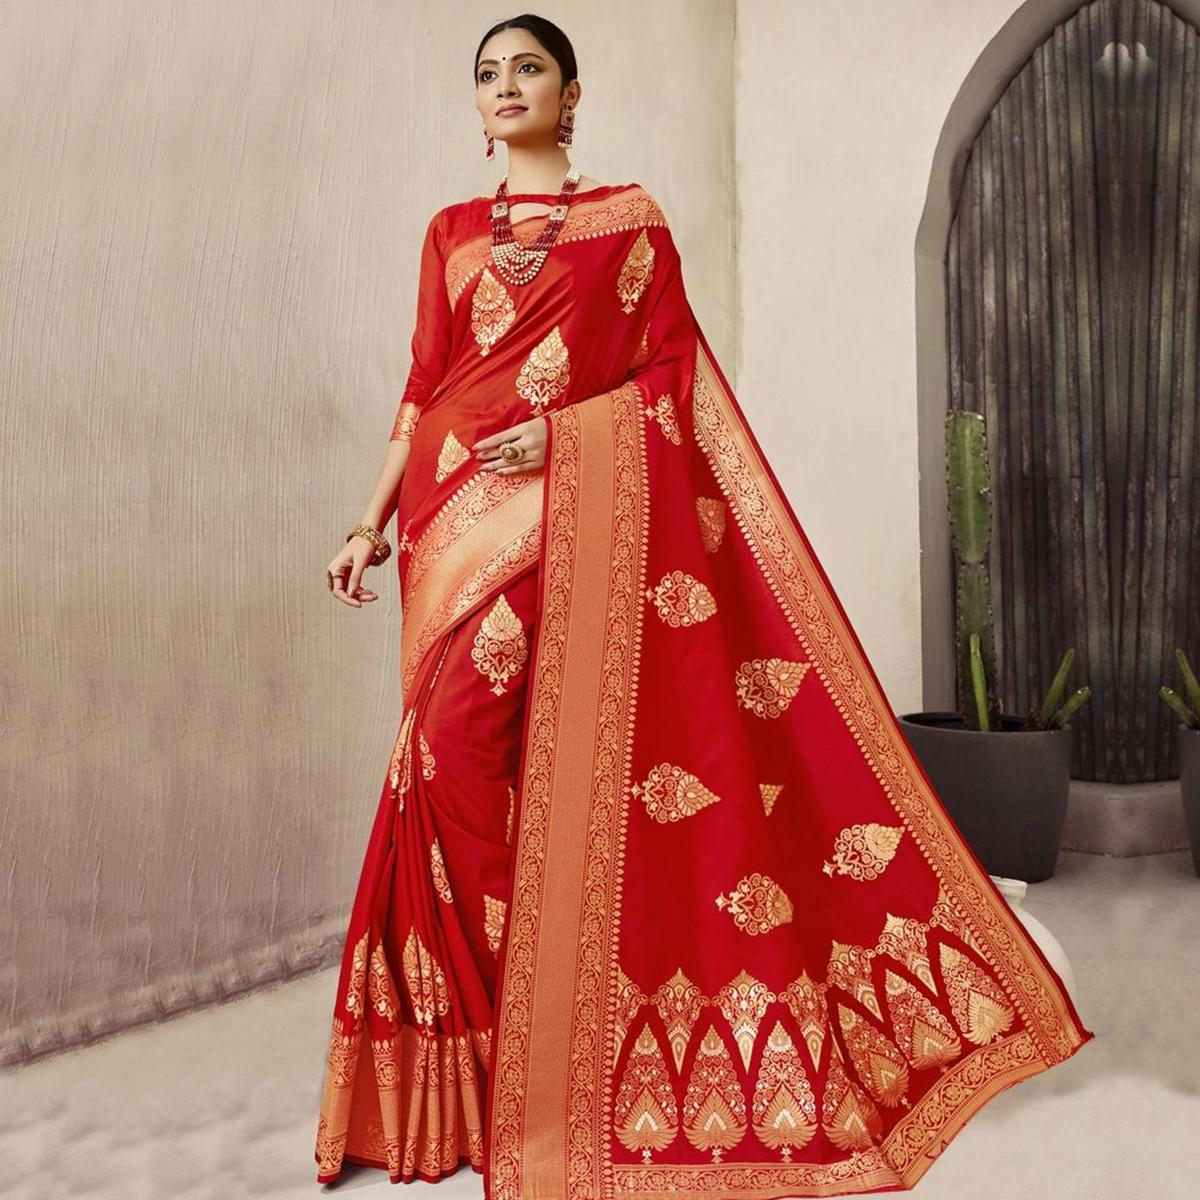 Excellent Red Colored Festive Wear woven jacquard Silk Saree With Tassels